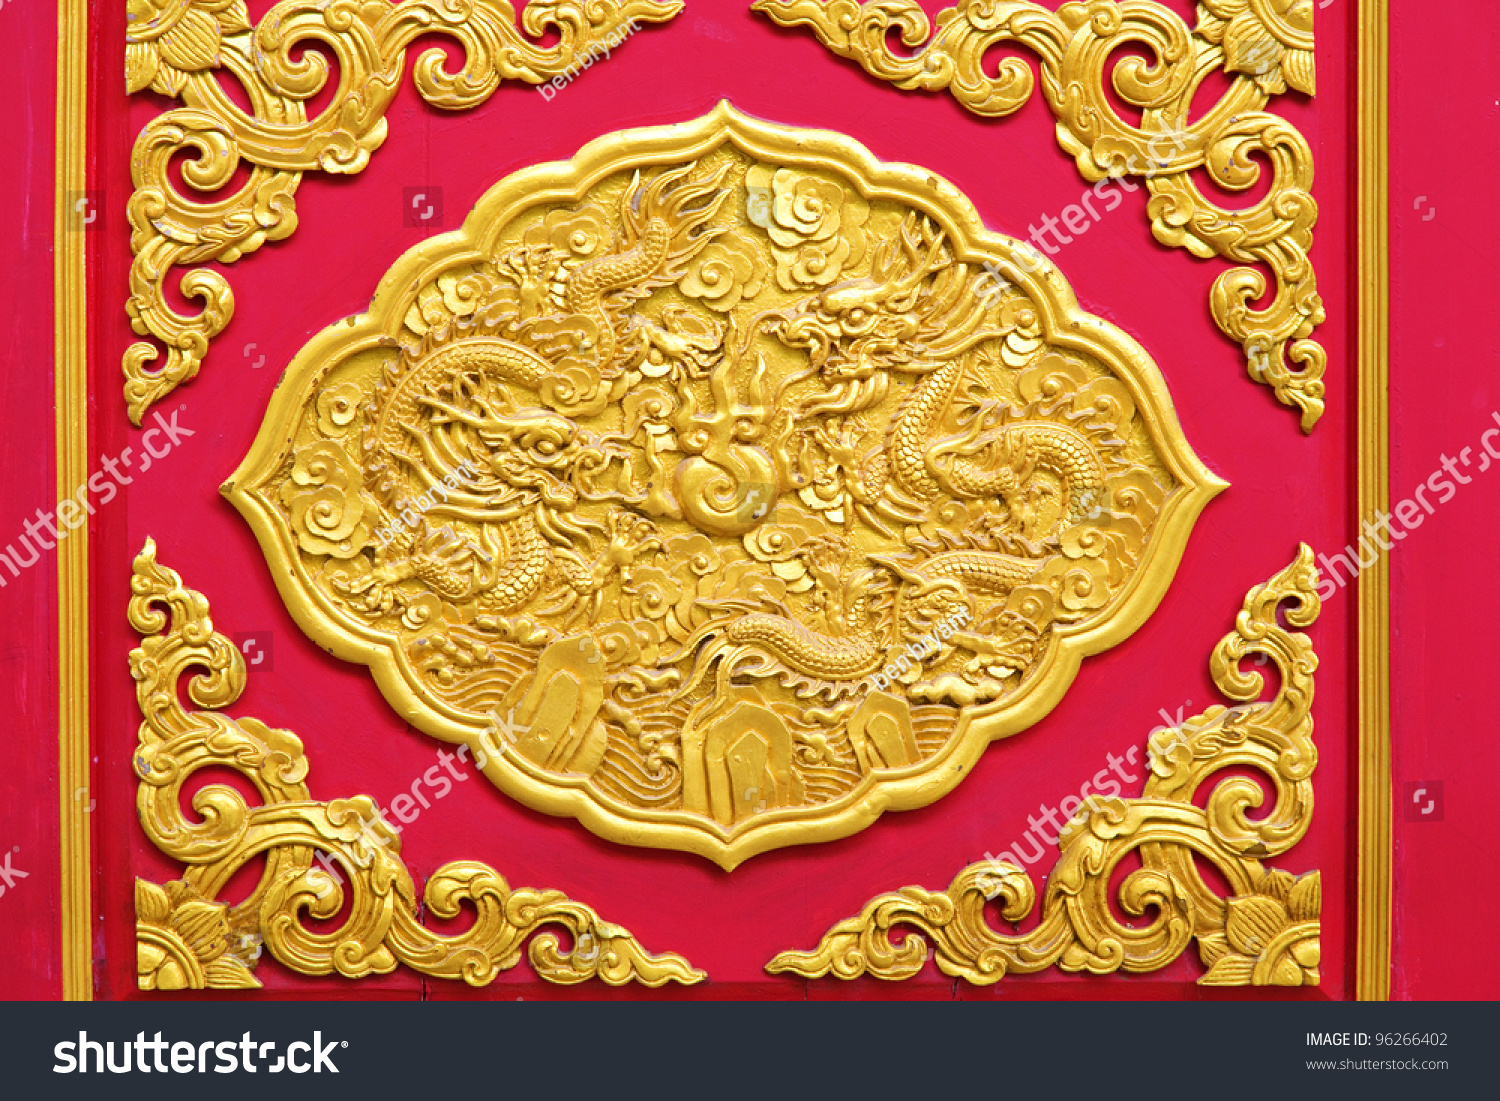 chinese dragon texture - photo #17